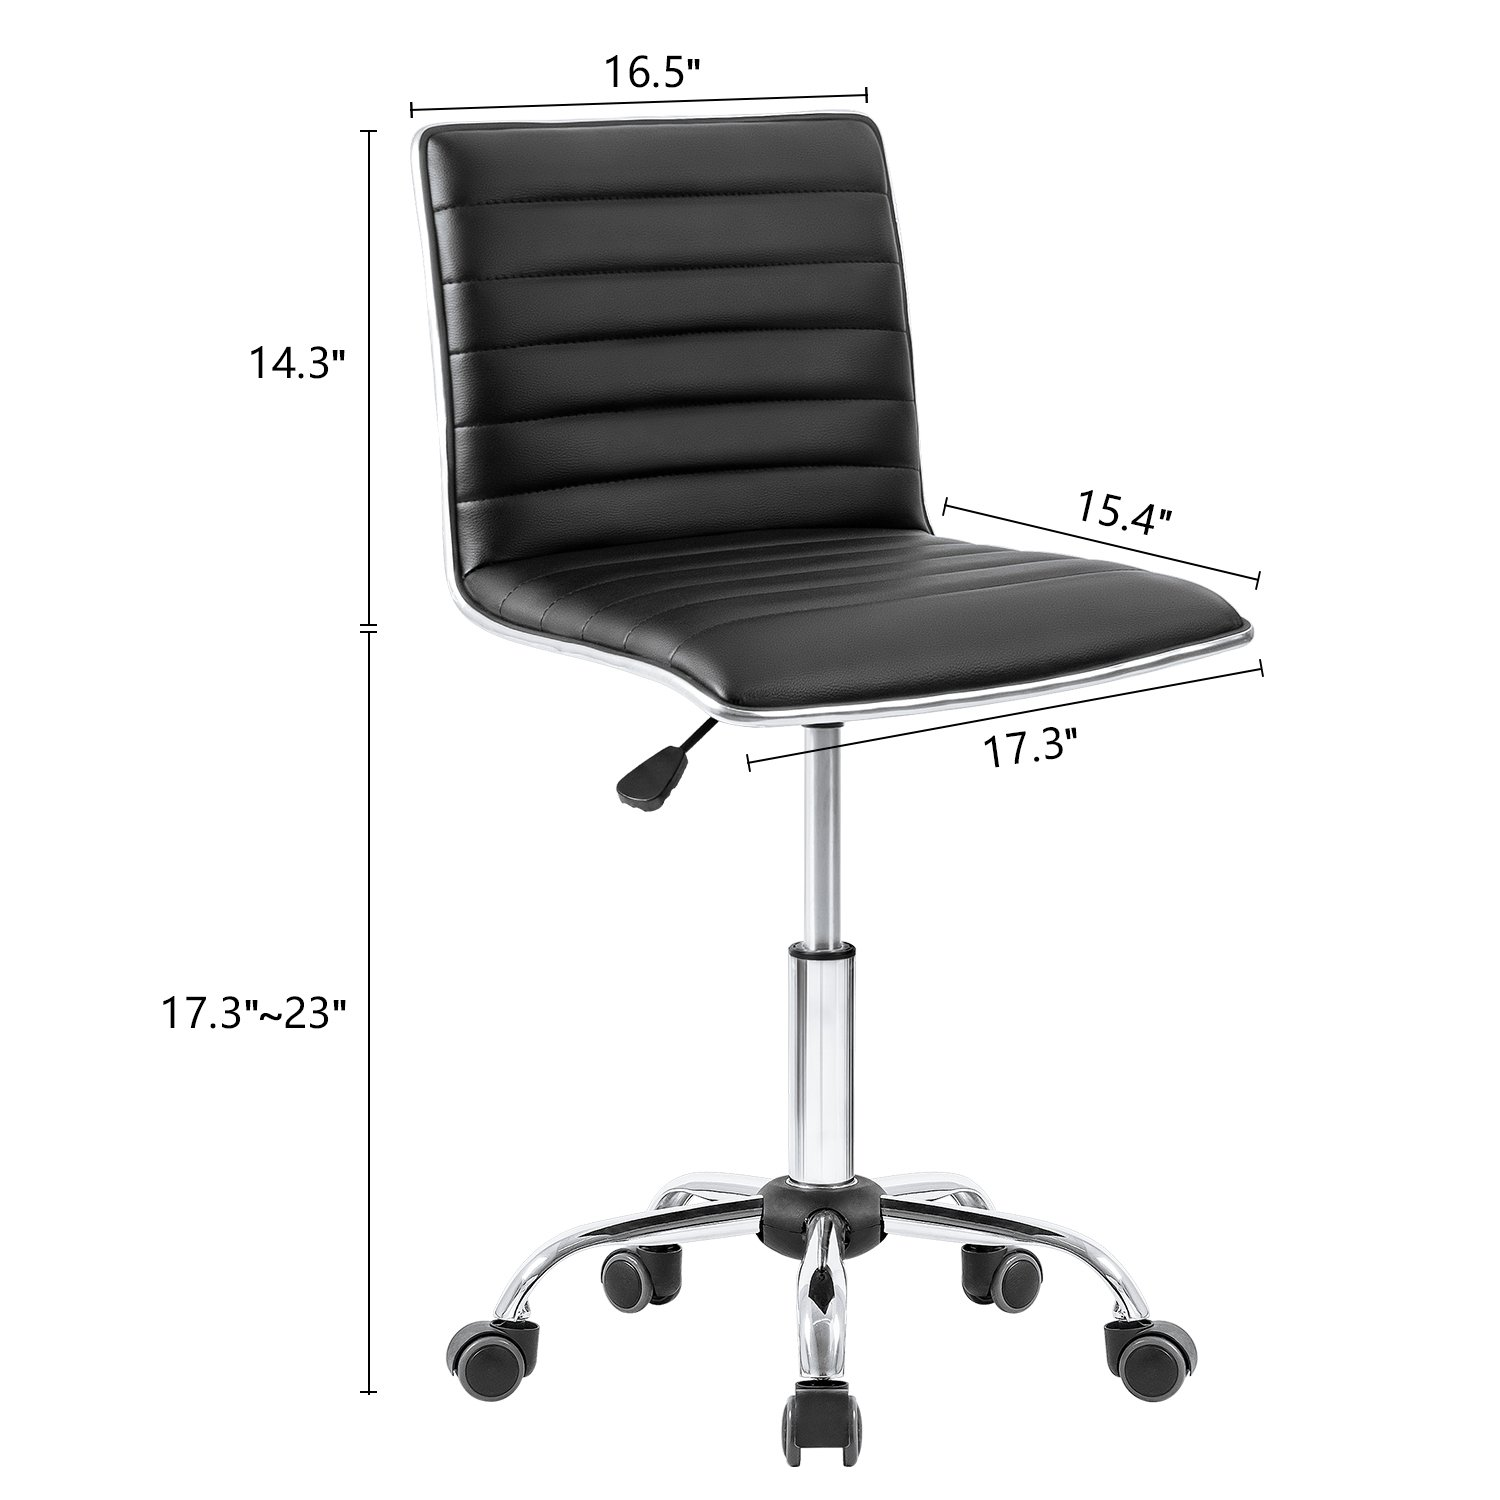 Homall Swivel Task Chair Desk Chair, Leather Vanity Computer Office Chair Rolling Adjustable Conference Chair Ribbed and Armless Chair Makeup Chair with Back Support(Black) by Homall (Image #3)